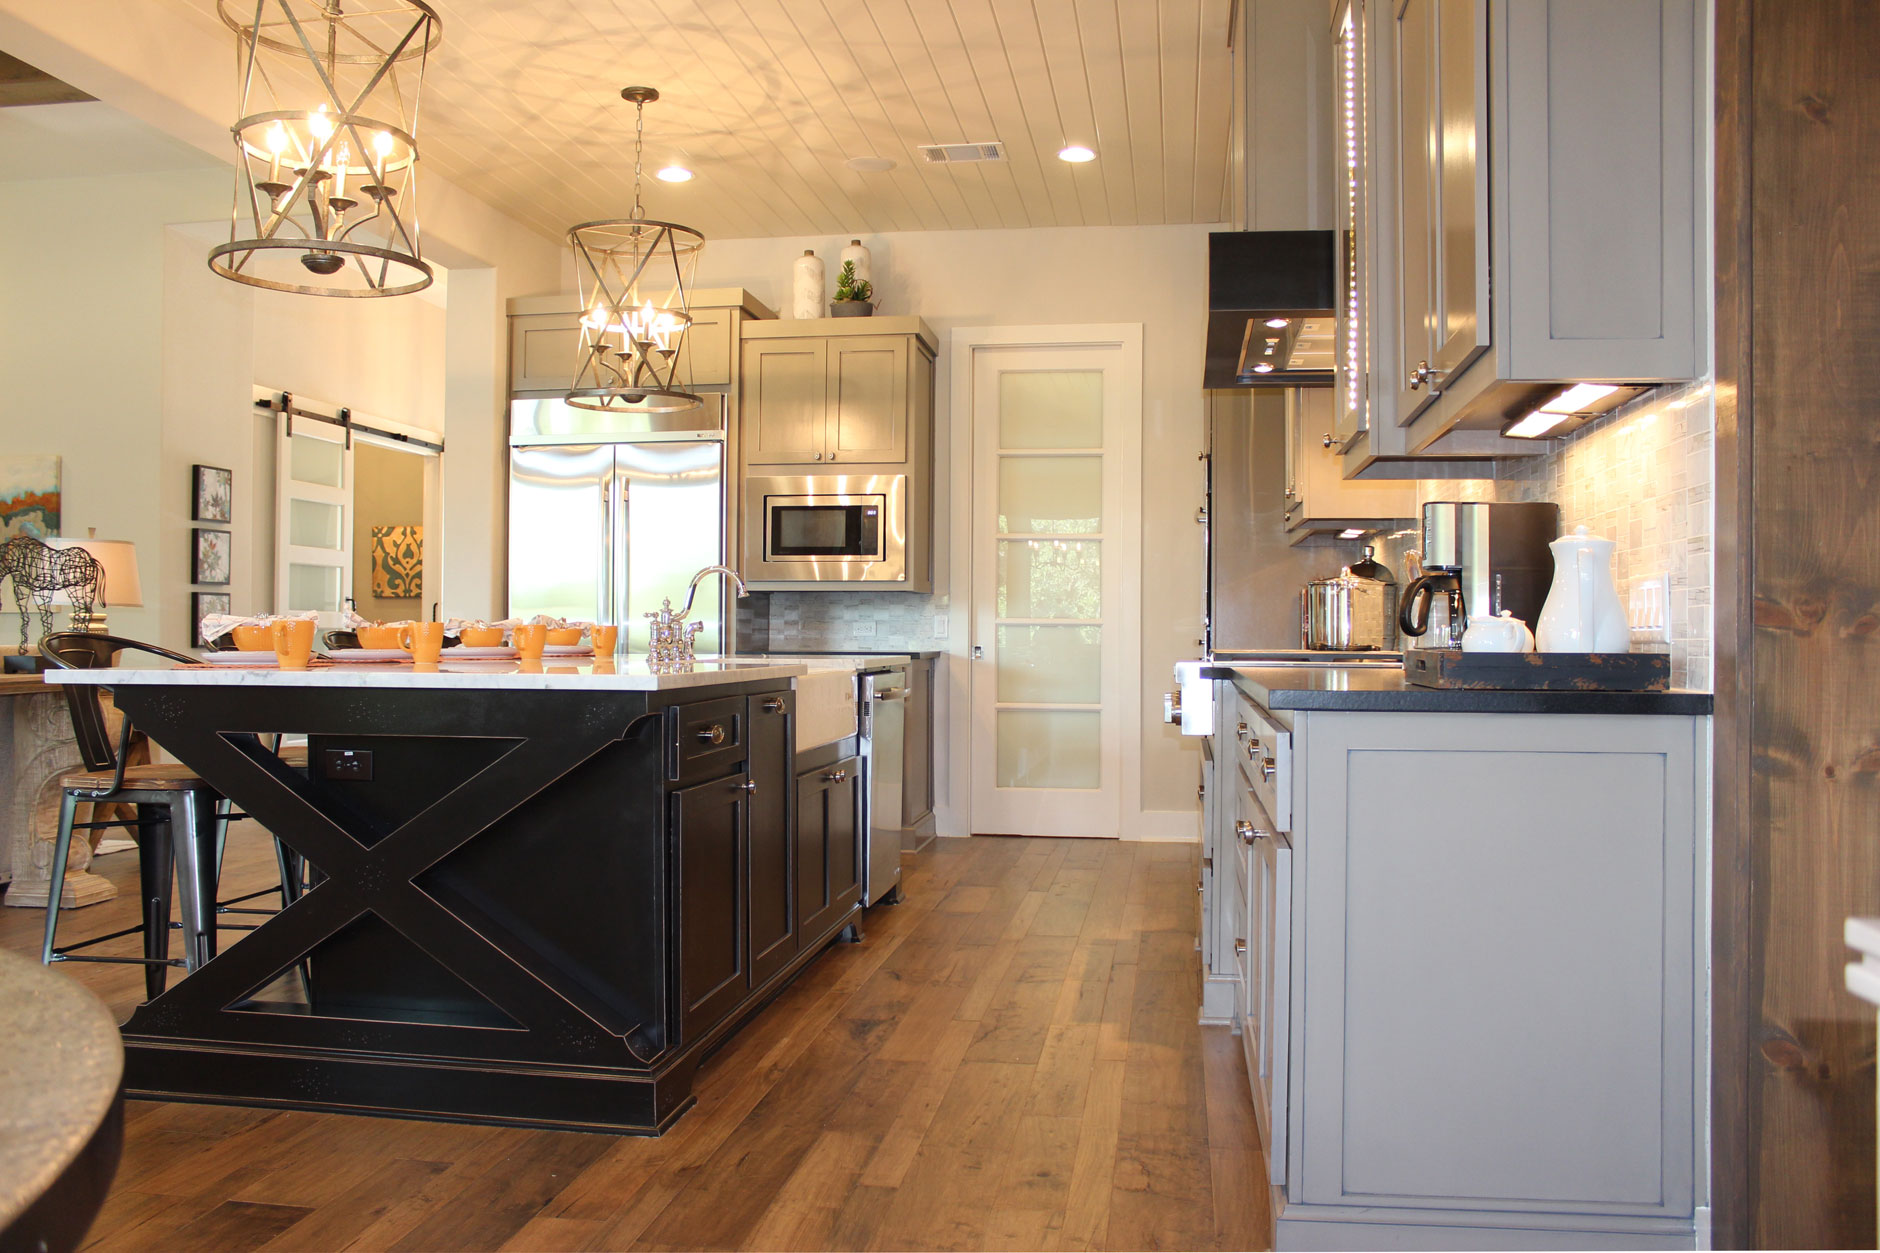 Burrows Cabinets Kitchen island with black x-brace and white farmhouse sink